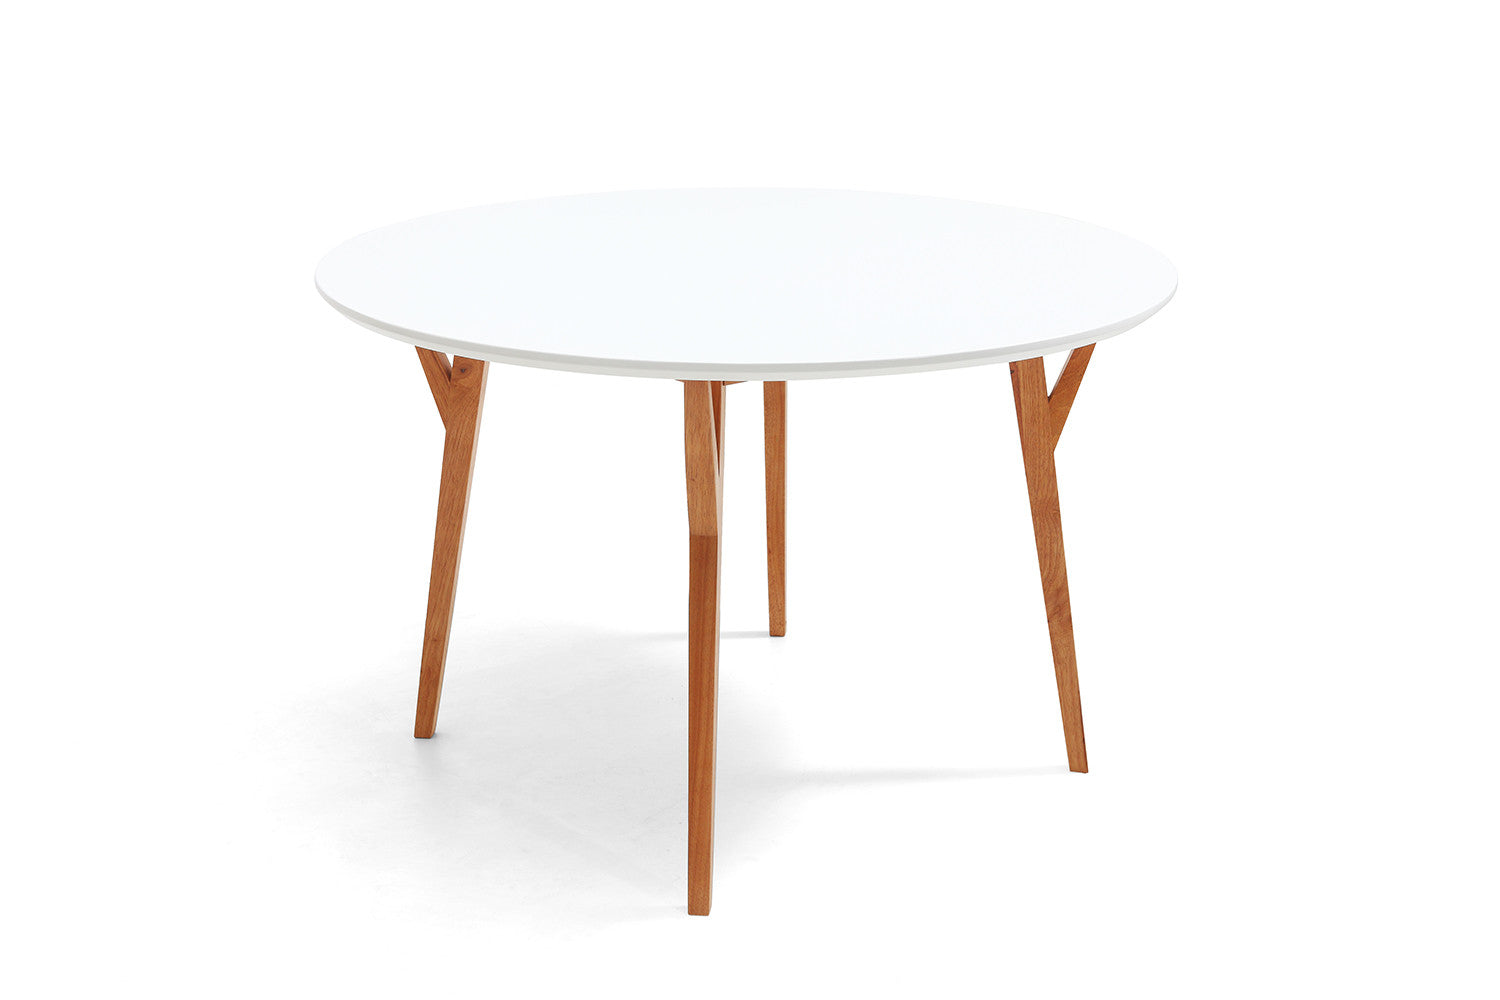 Table de salle manger ronde design scandinave moesa for Table salle a manger jackson